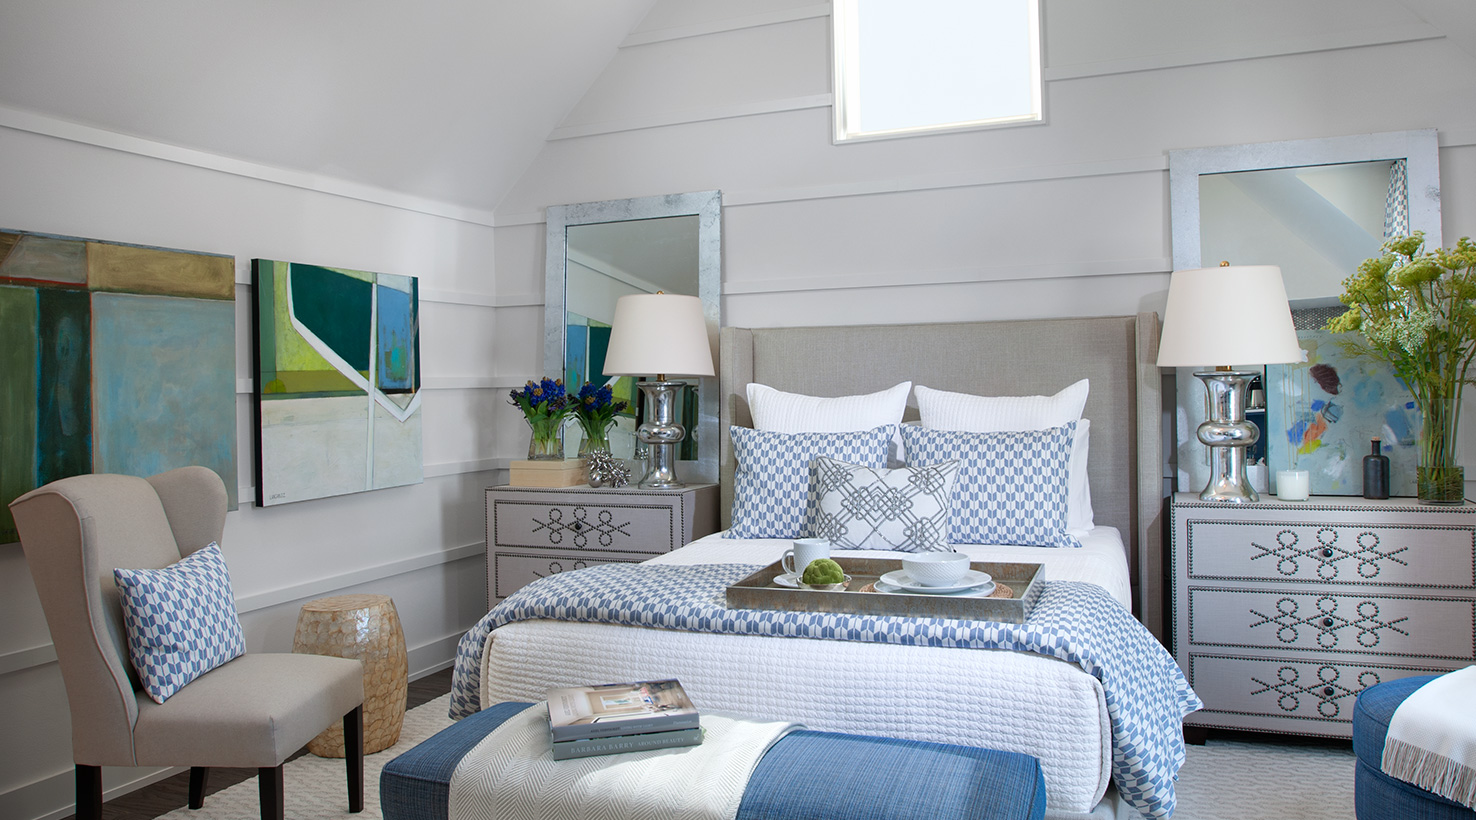 The hgtv smart home 2015 sponsored by sherwin williams - How to design a smart home ...